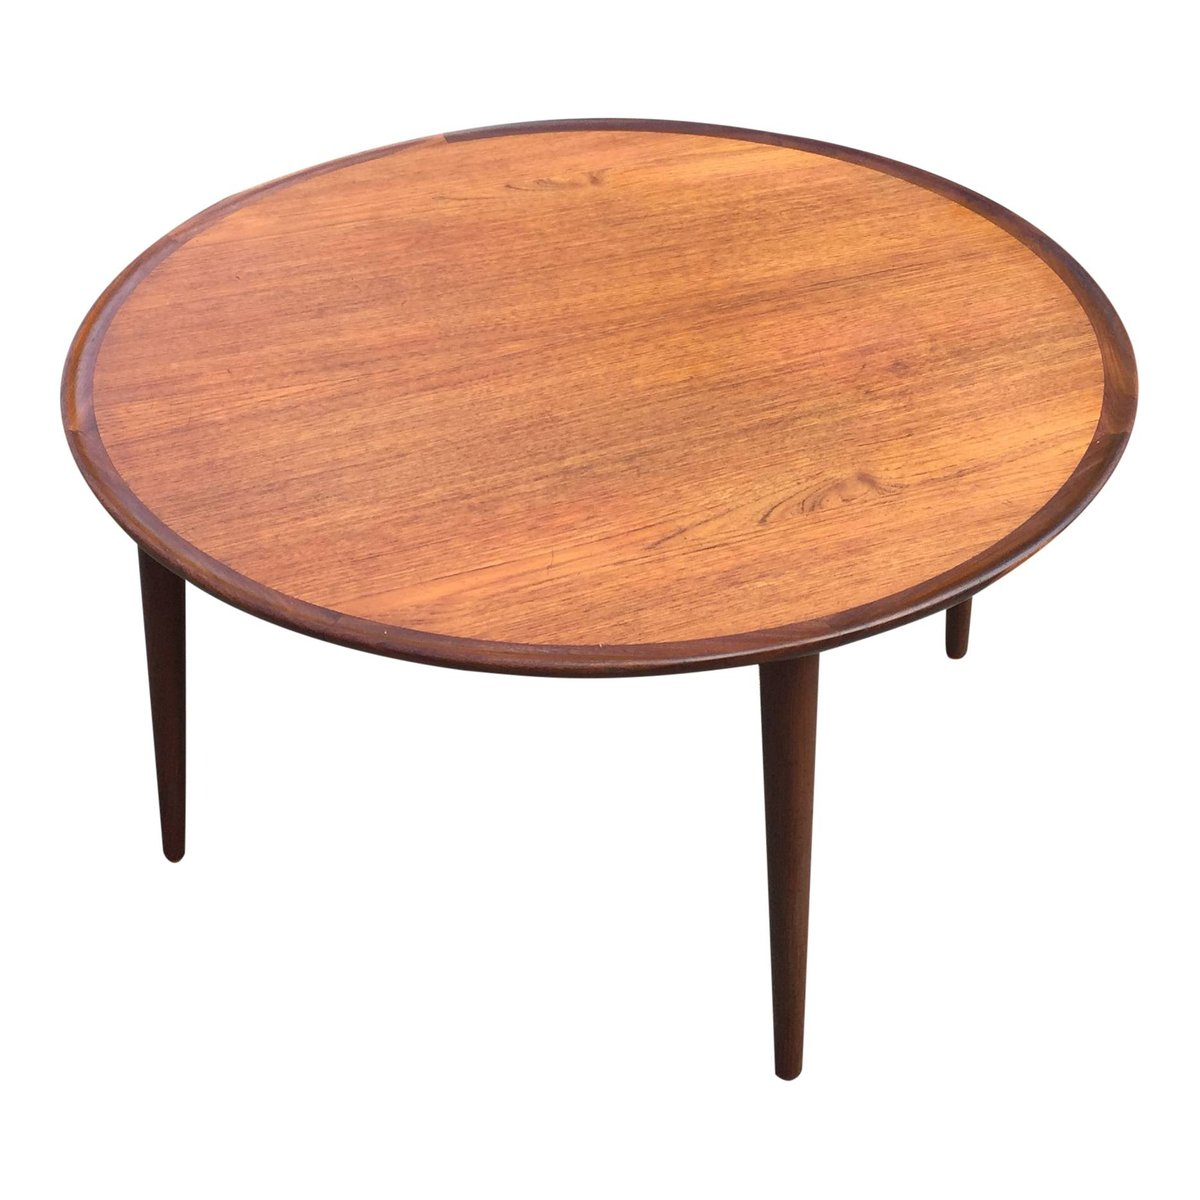 Scandinavian Teak Coffee Table: Danish Round Teak Coffee Table For Sale At Pamono